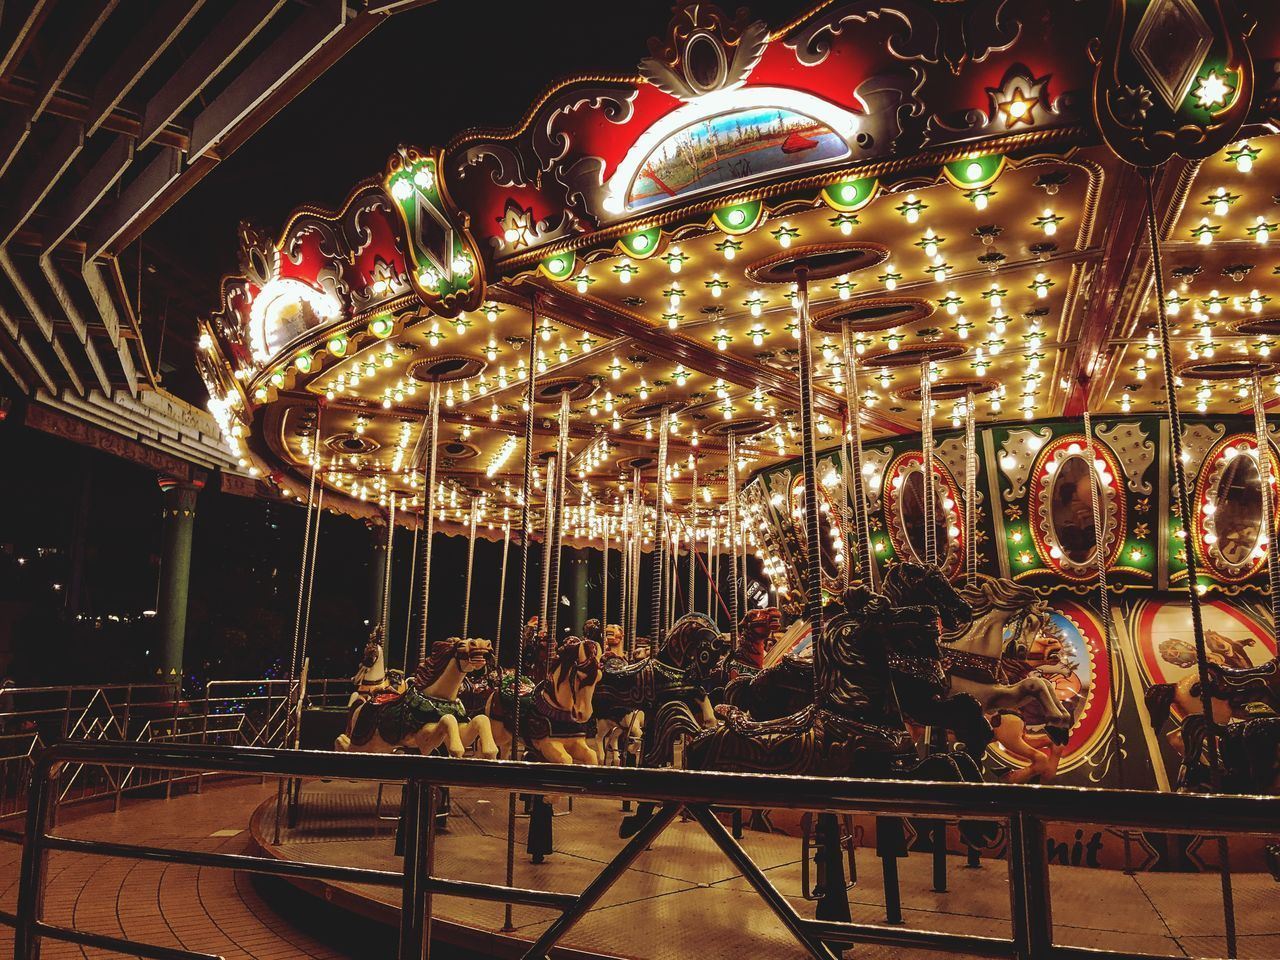 amusement park ride, amusement park, illuminated, carousel, arts culture and entertainment, night, animal representation, leisure activity, representation, lighting equipment, glowing, enjoyment, fun, no people, carousel horses, merry-go-round, light, outdoors, architecture, recreational pursuit